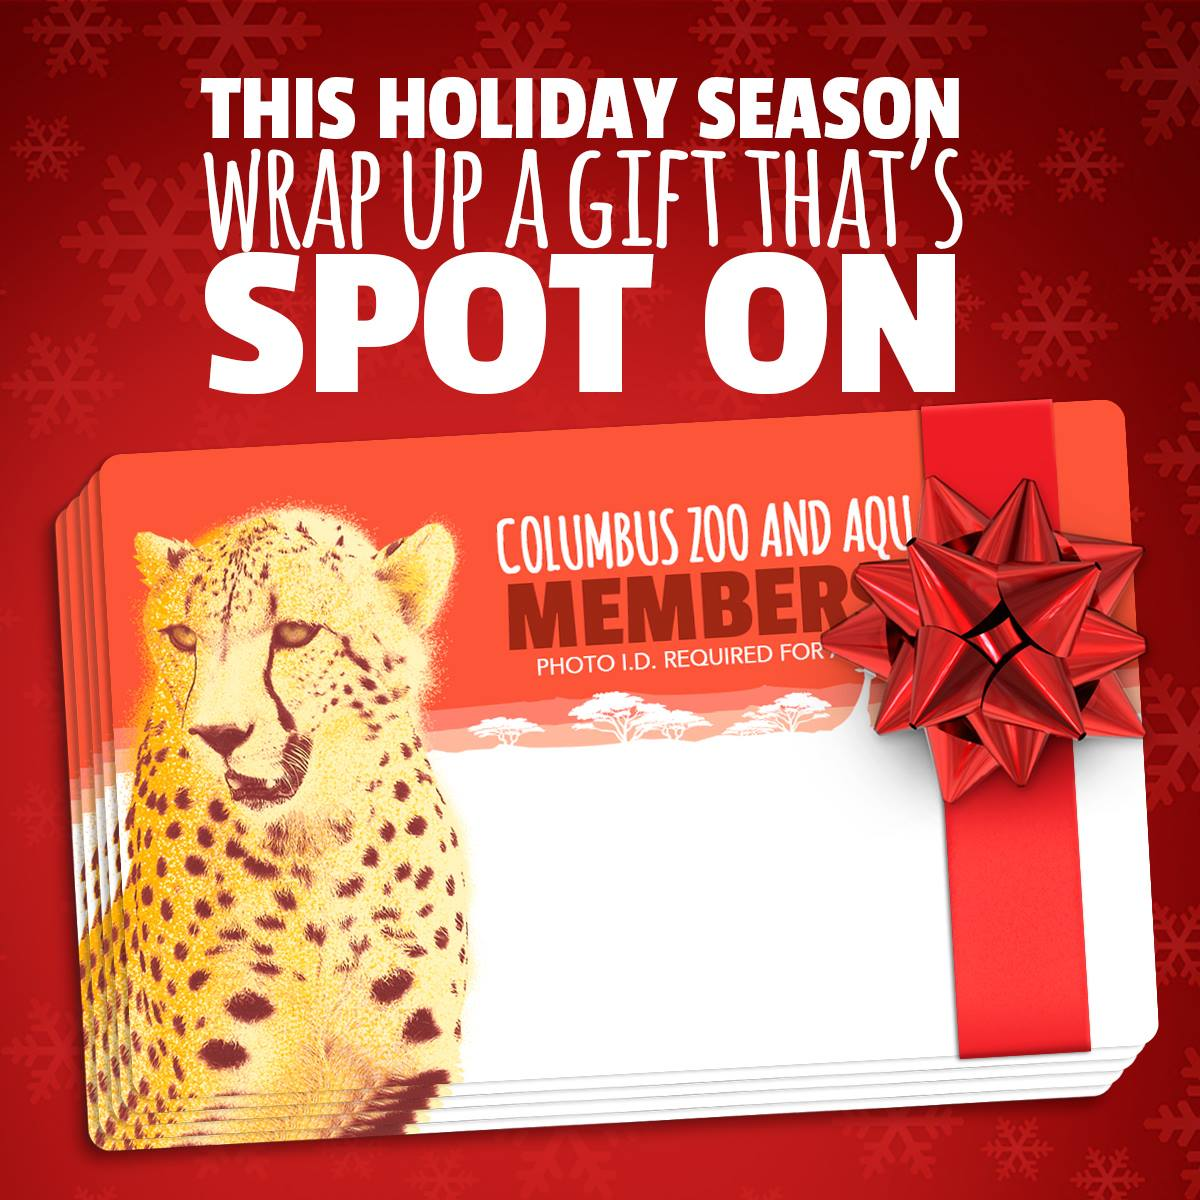 Columbus Zoo On Twitter Wrap Up A Wild Gift Thats Spot On Today